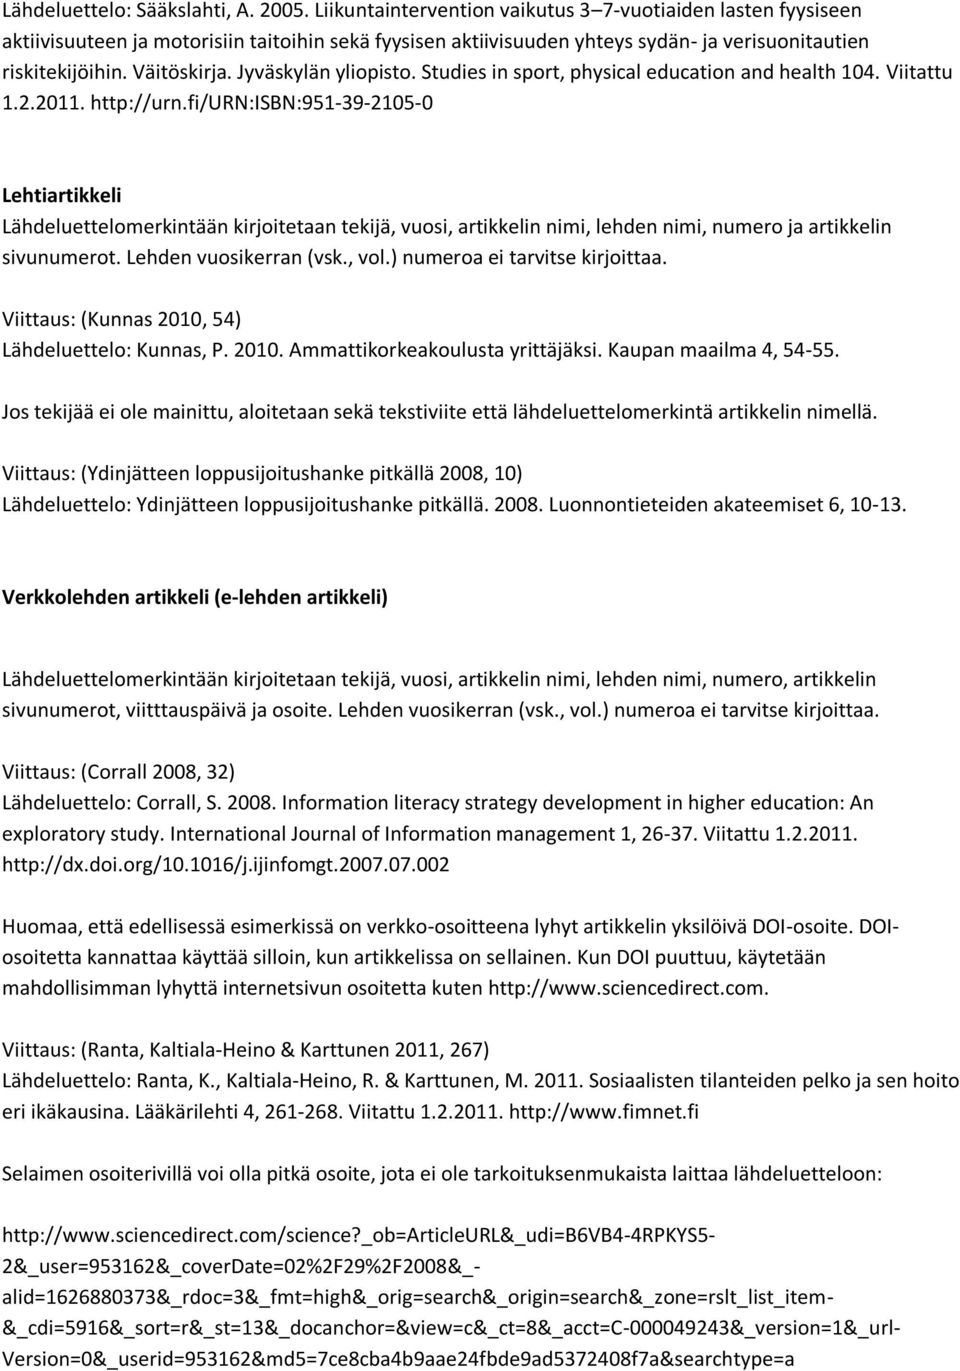 Jyväskylän yliopisto. Studies in sport, physical education and health 104. Viitattu 1.2.2011. http://urn.